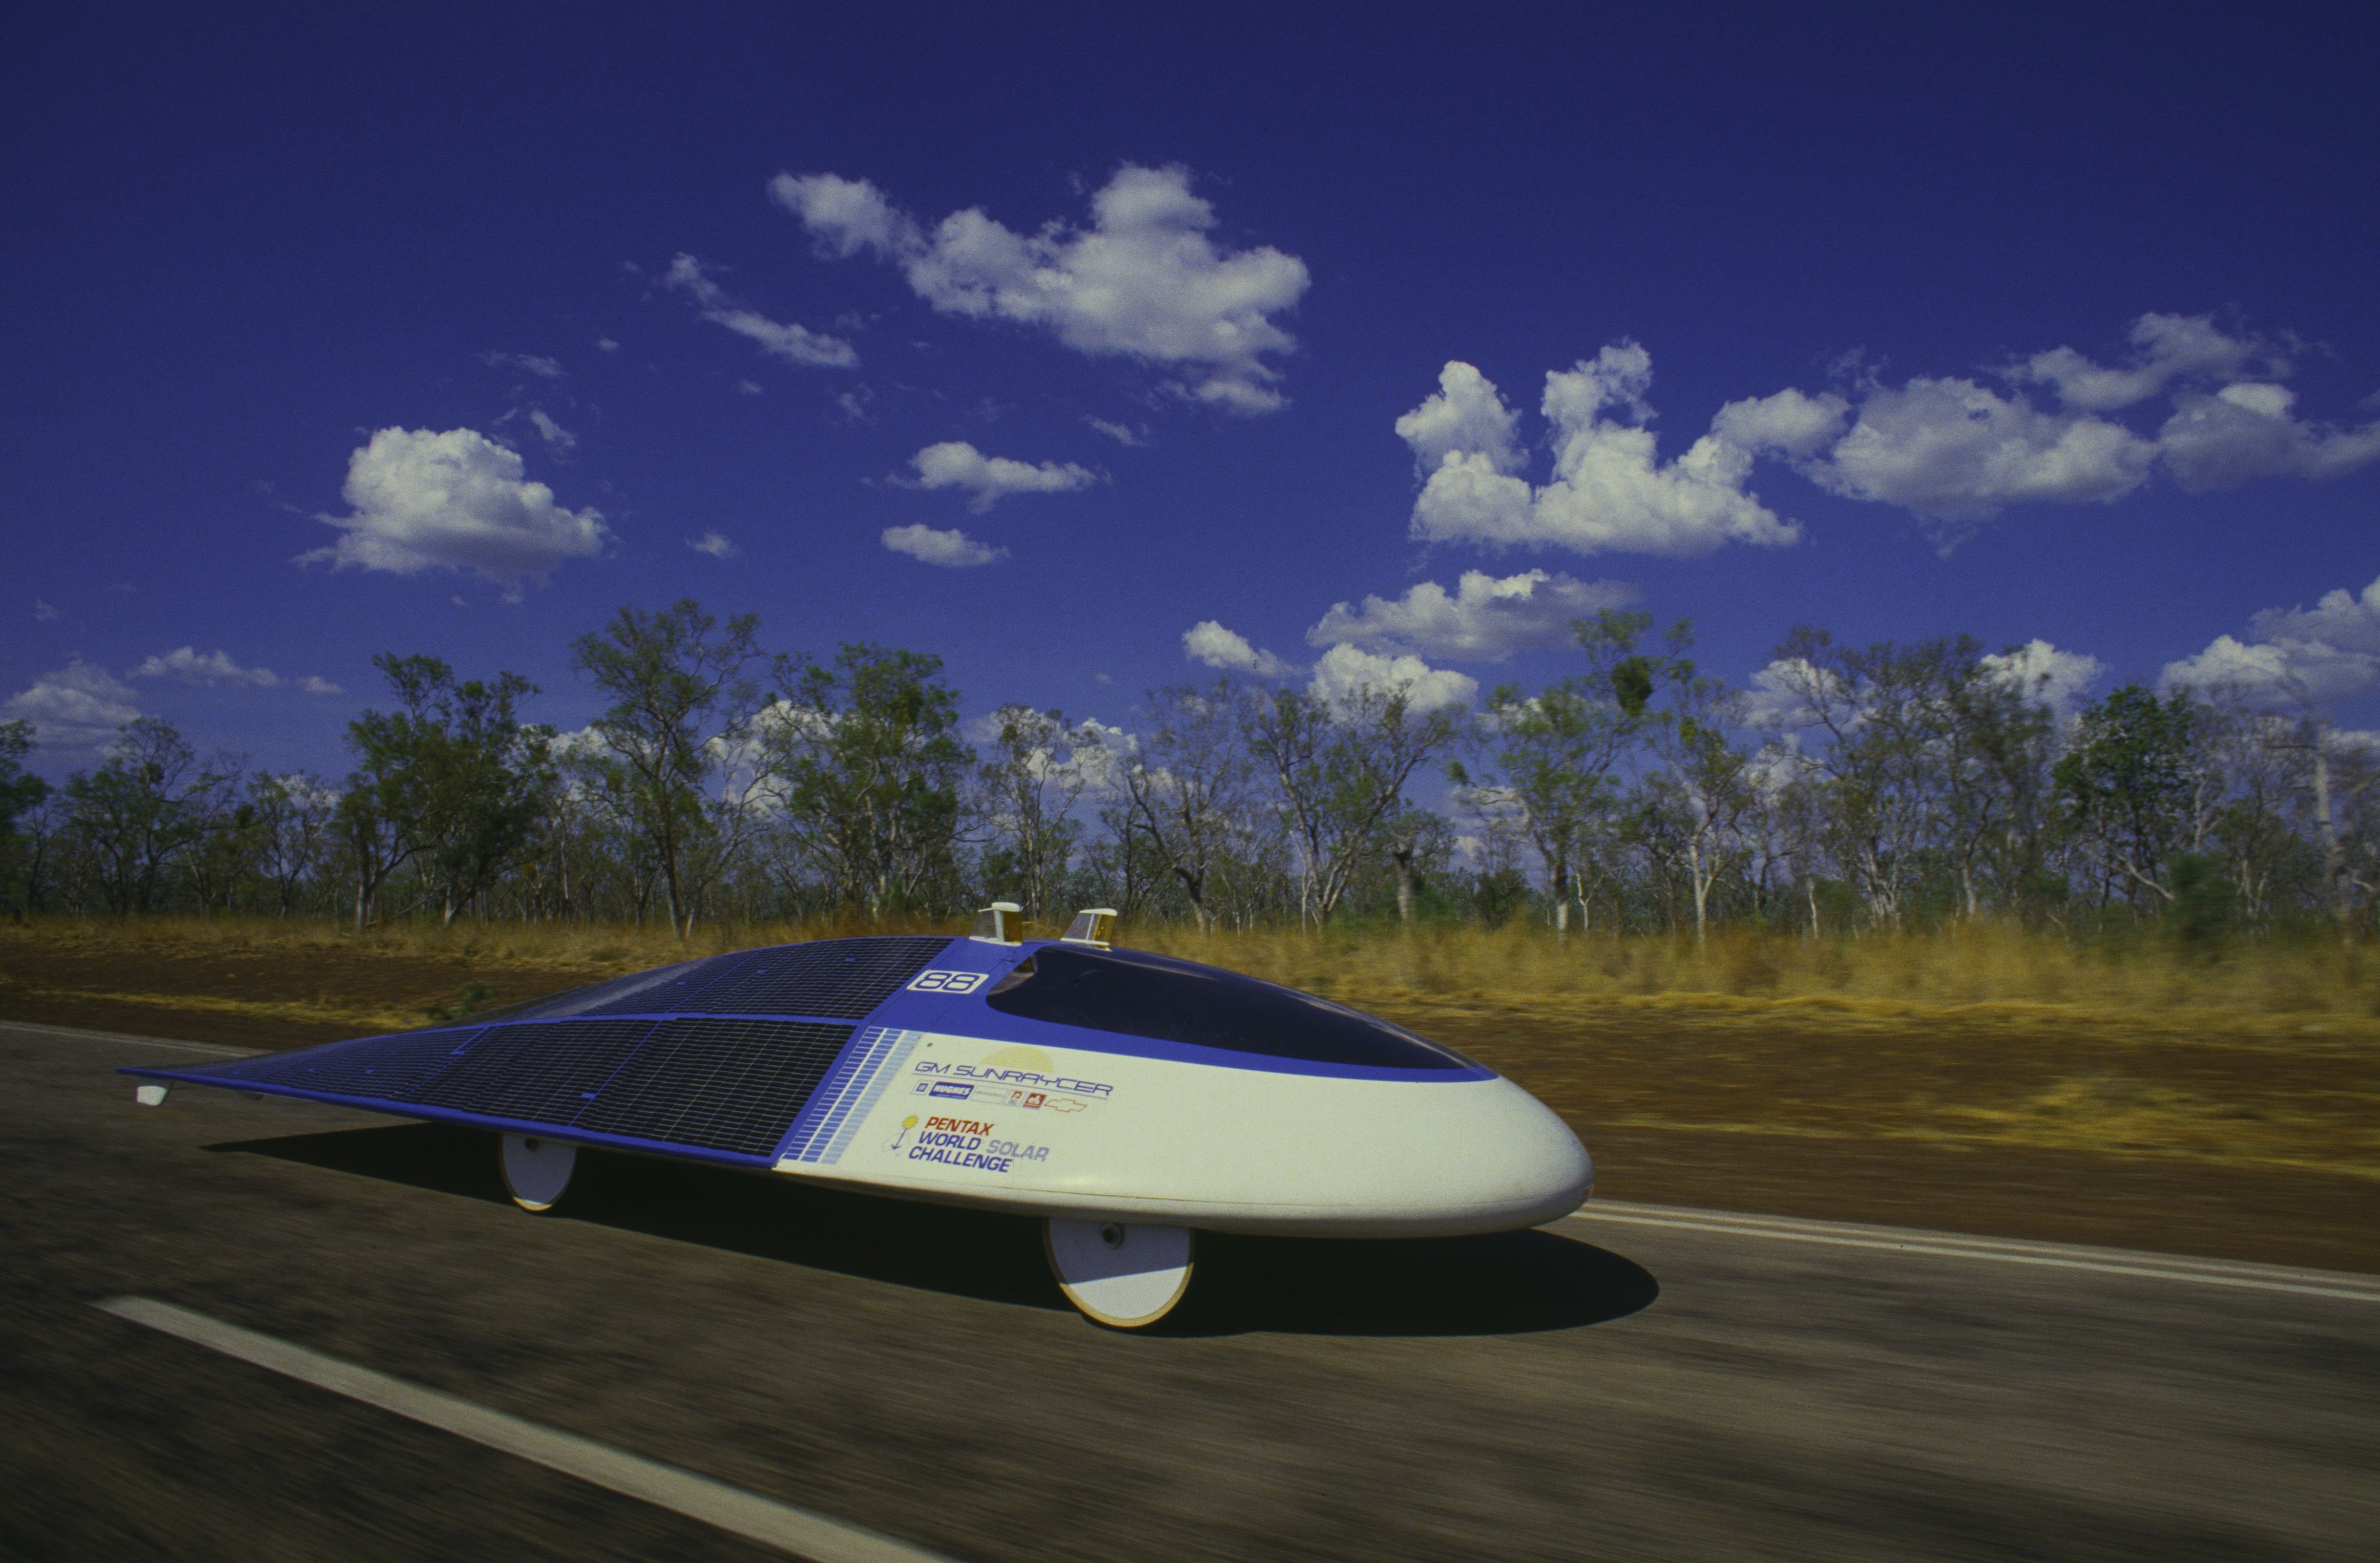 General Motors' first solar-powered car